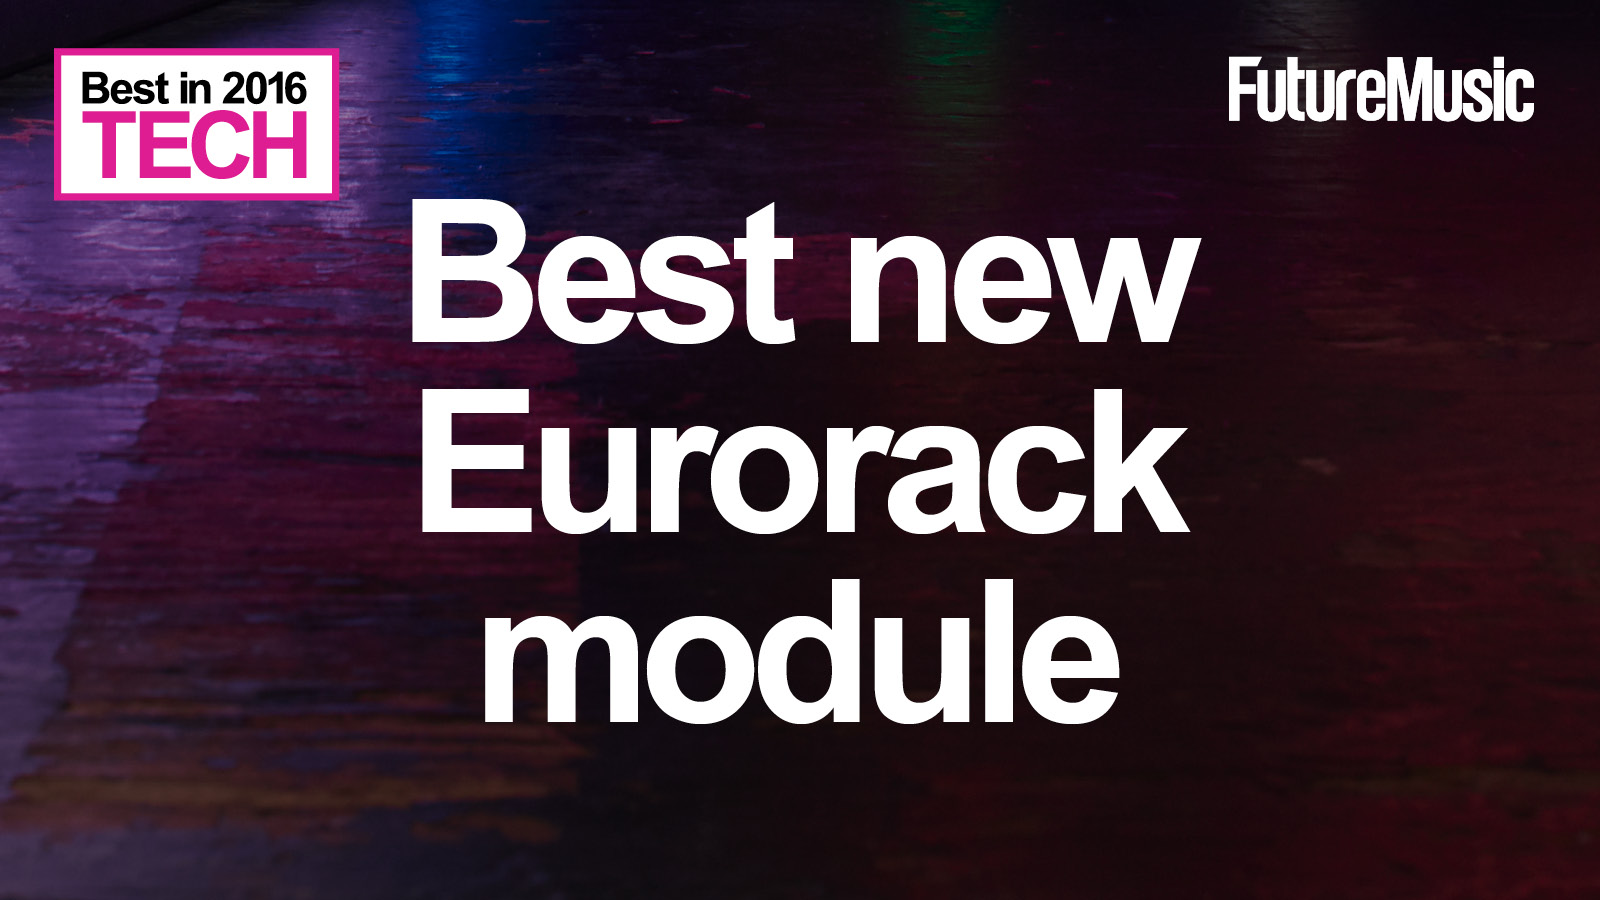 What is the best new Eurorack module of 2016?